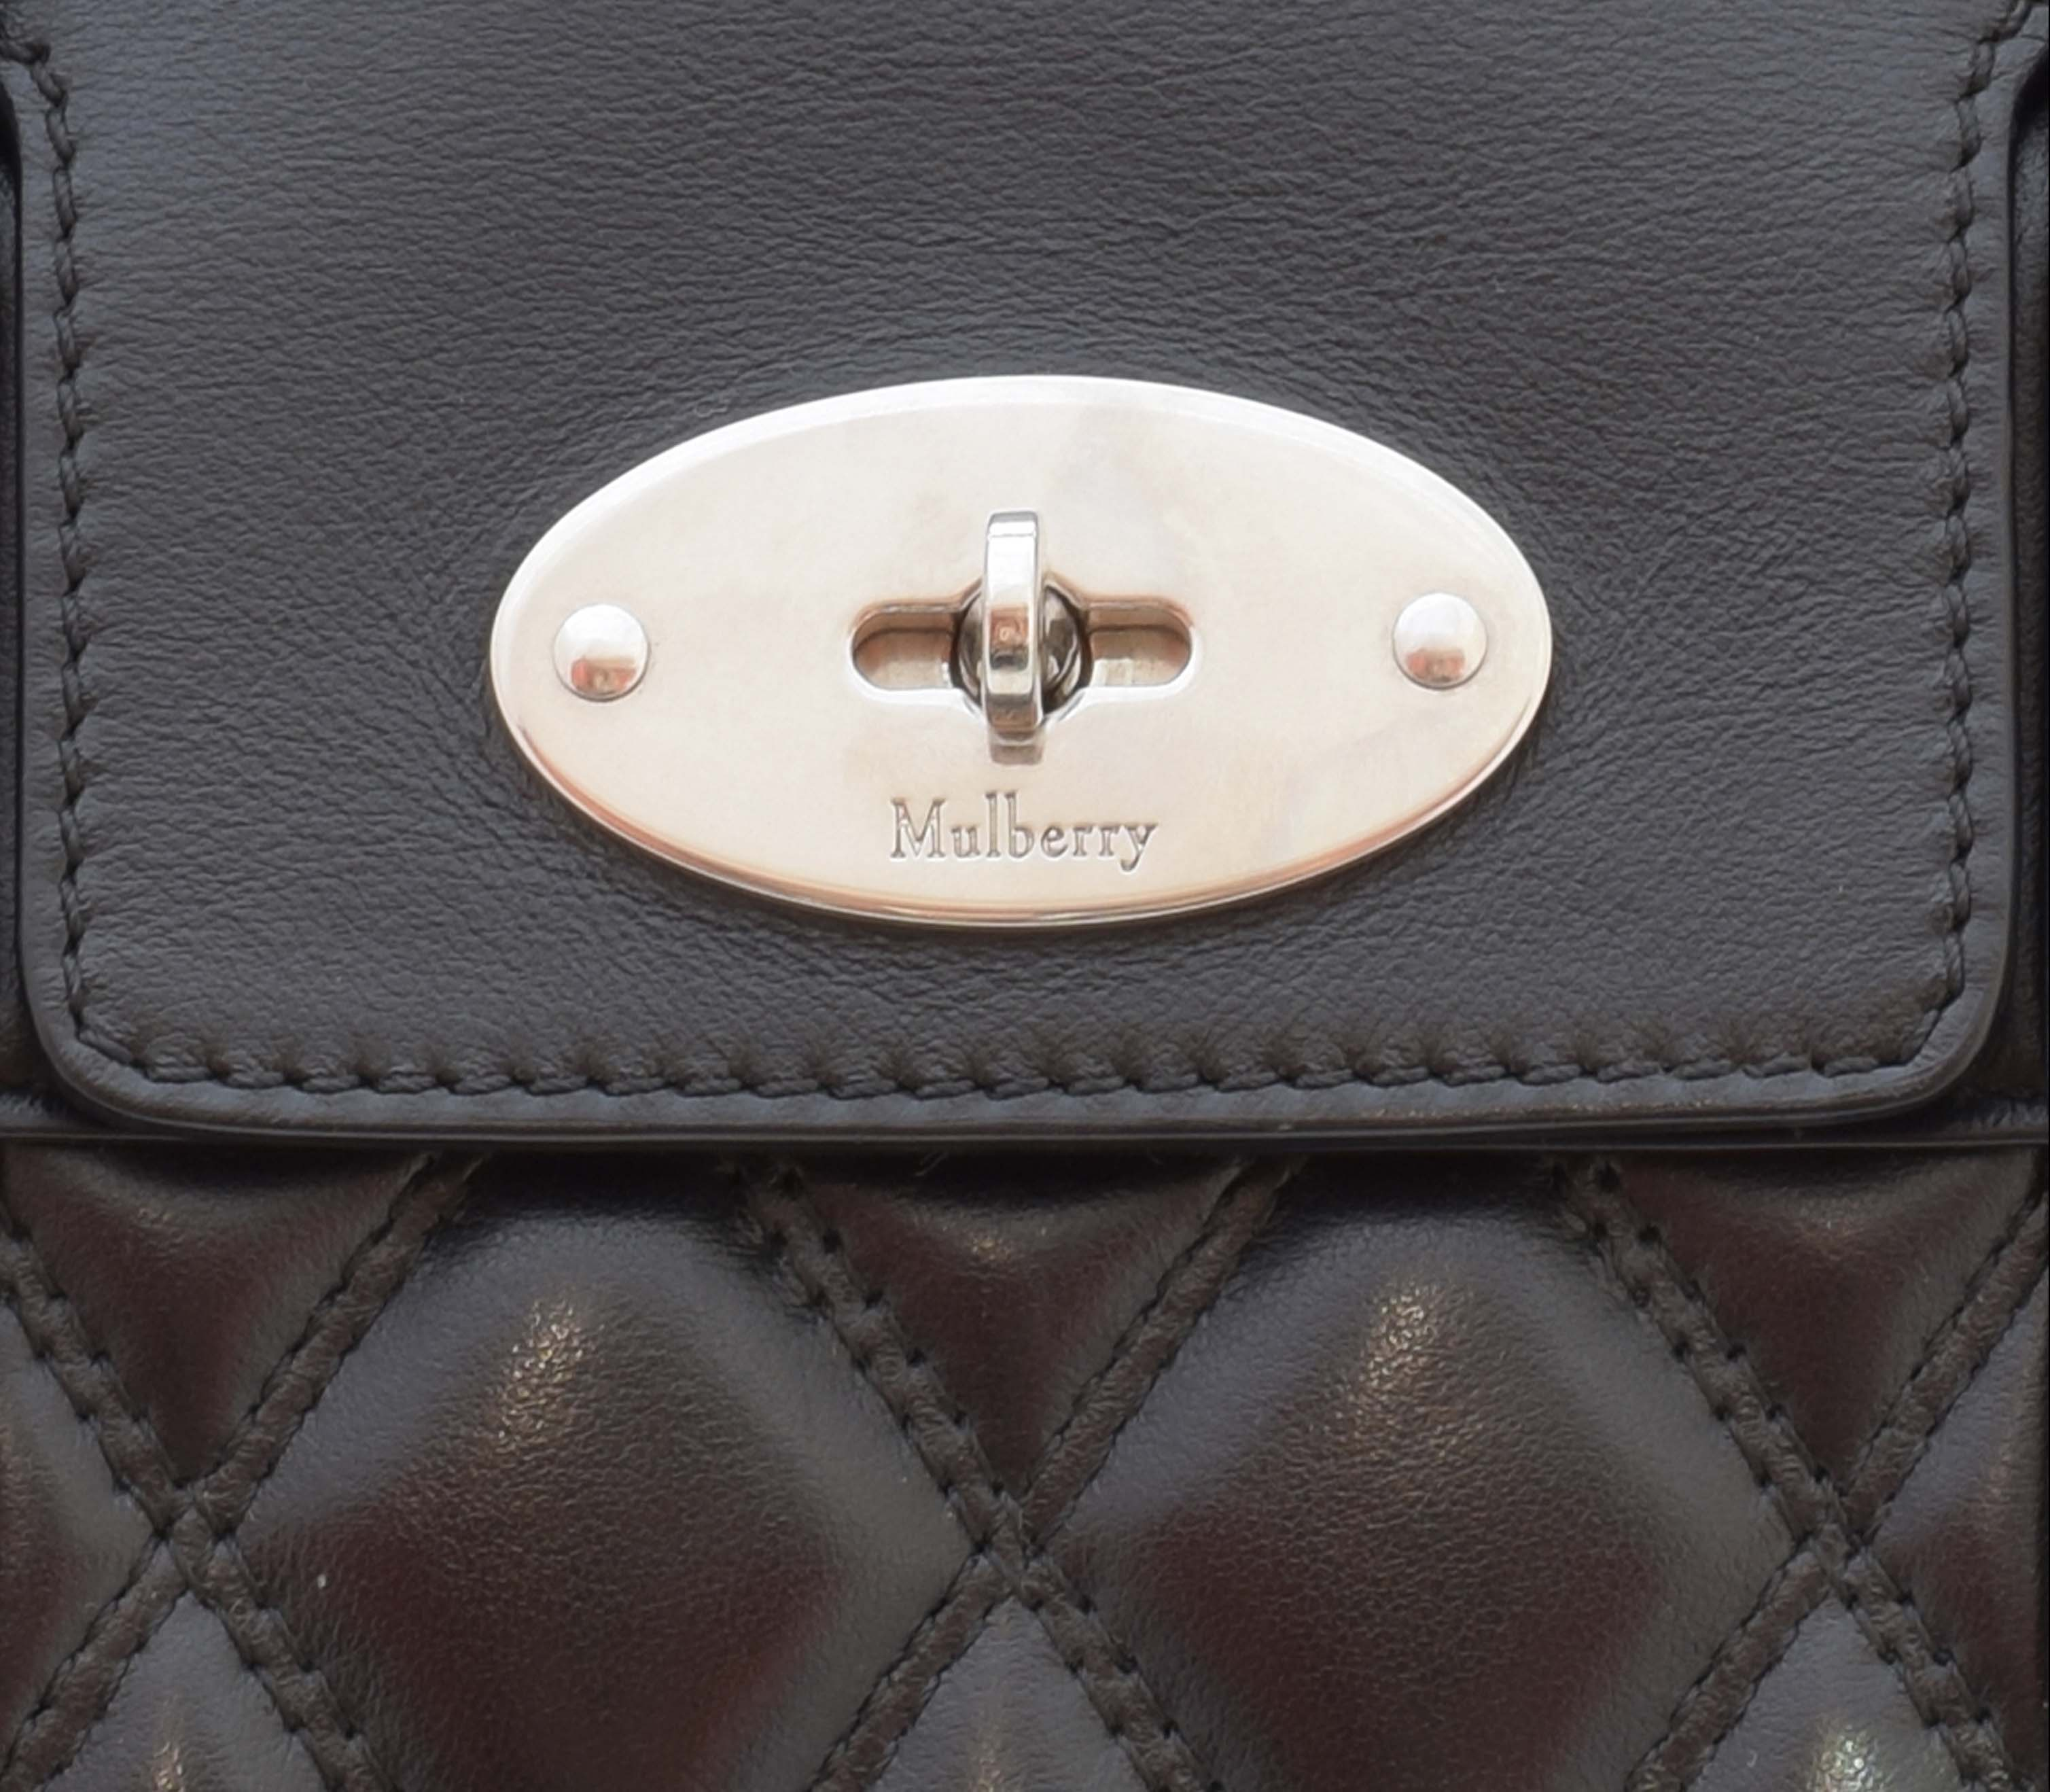 Mulberry - The Ultimate British Brand